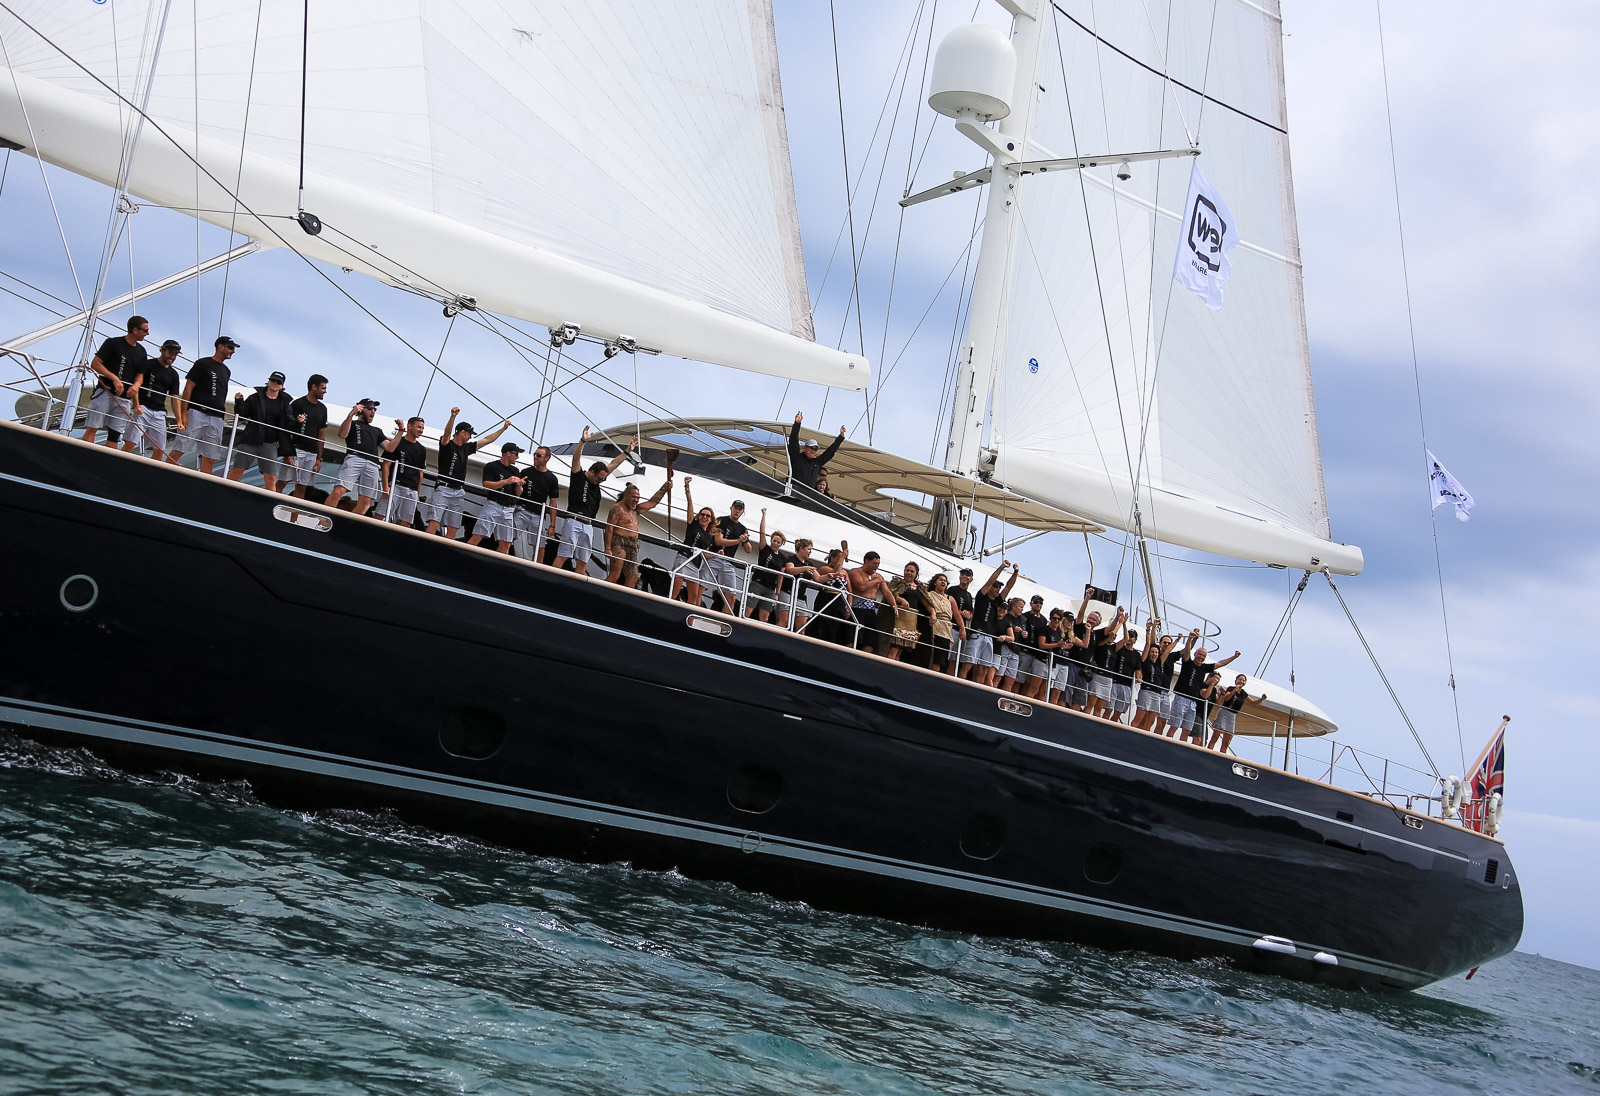 Sailing yacht Silencio - Winner of Day 1 at the NZ Millennium Cup 2015 - Photo by Jeff Brown